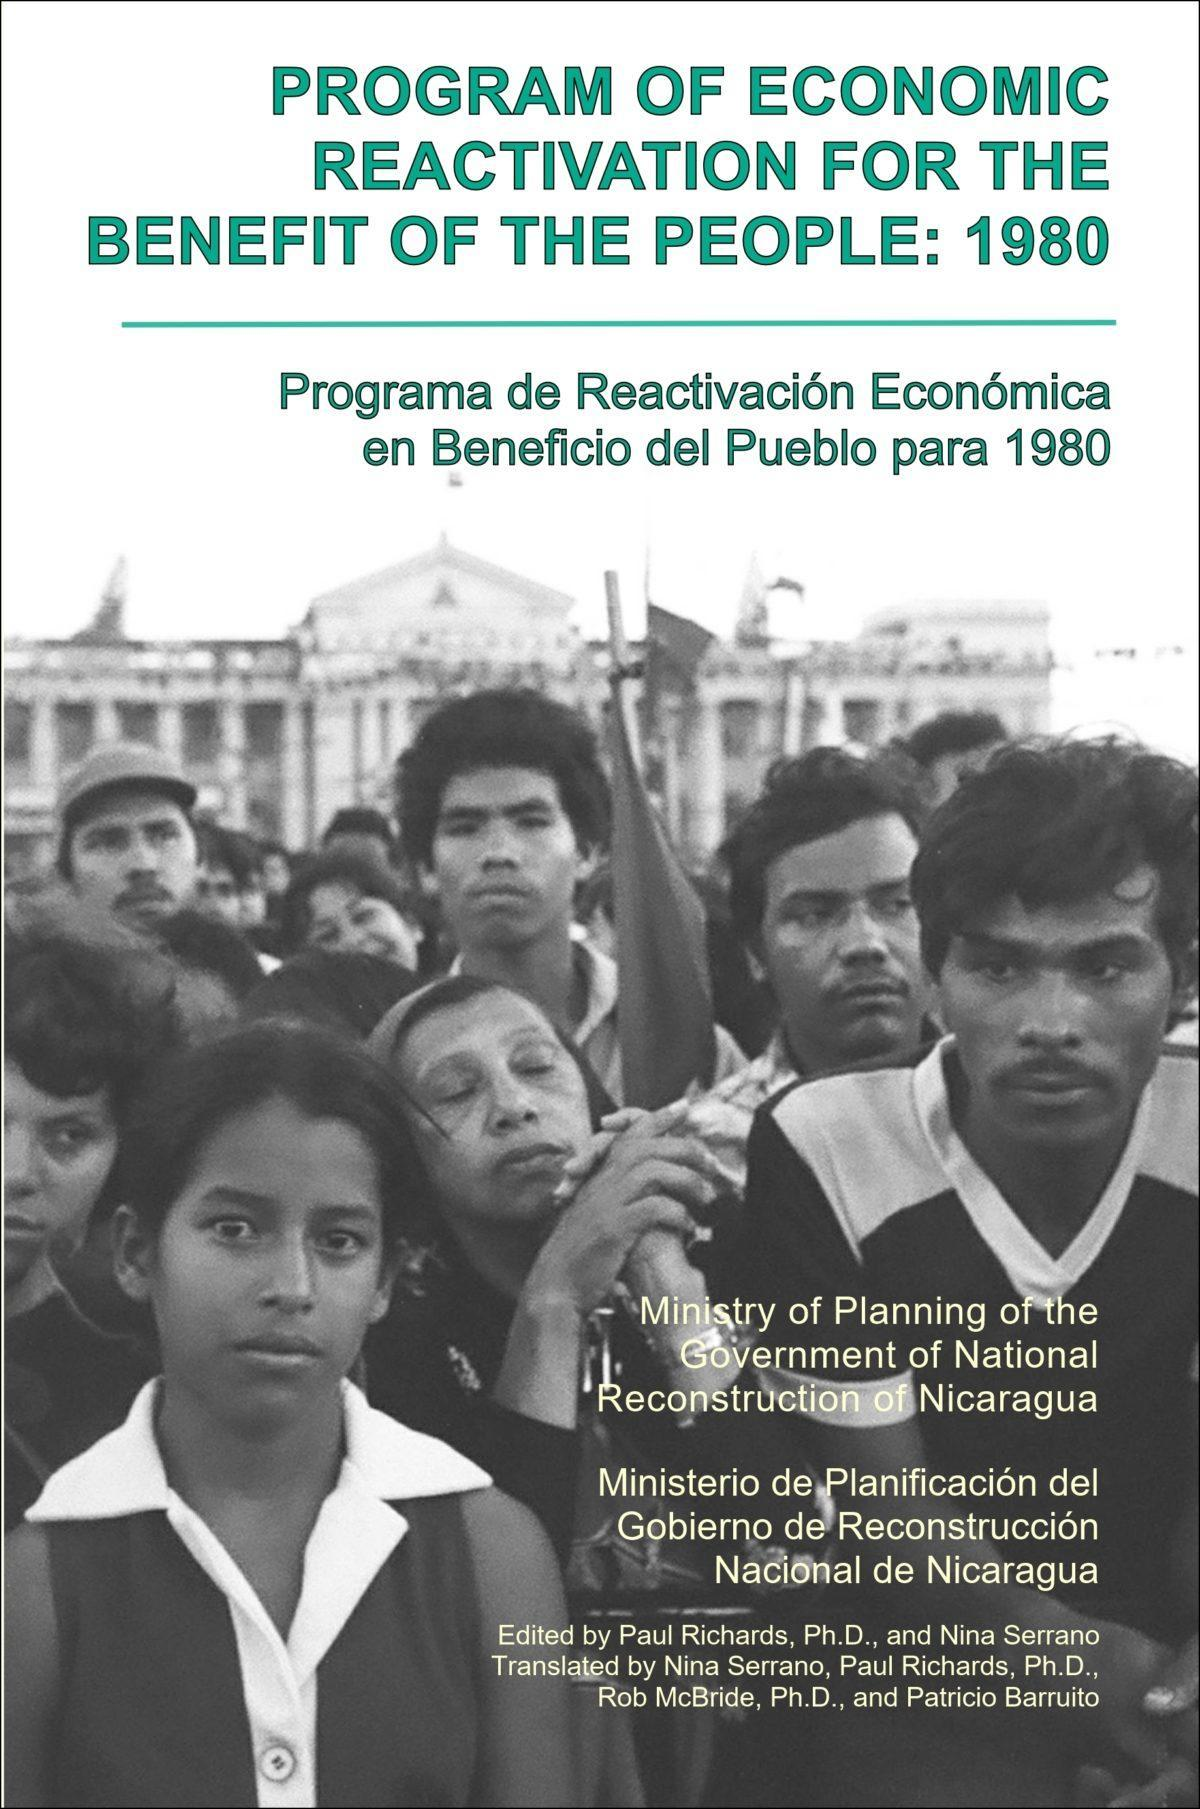 1980 Nicaraguan Program of Economic Reactivation